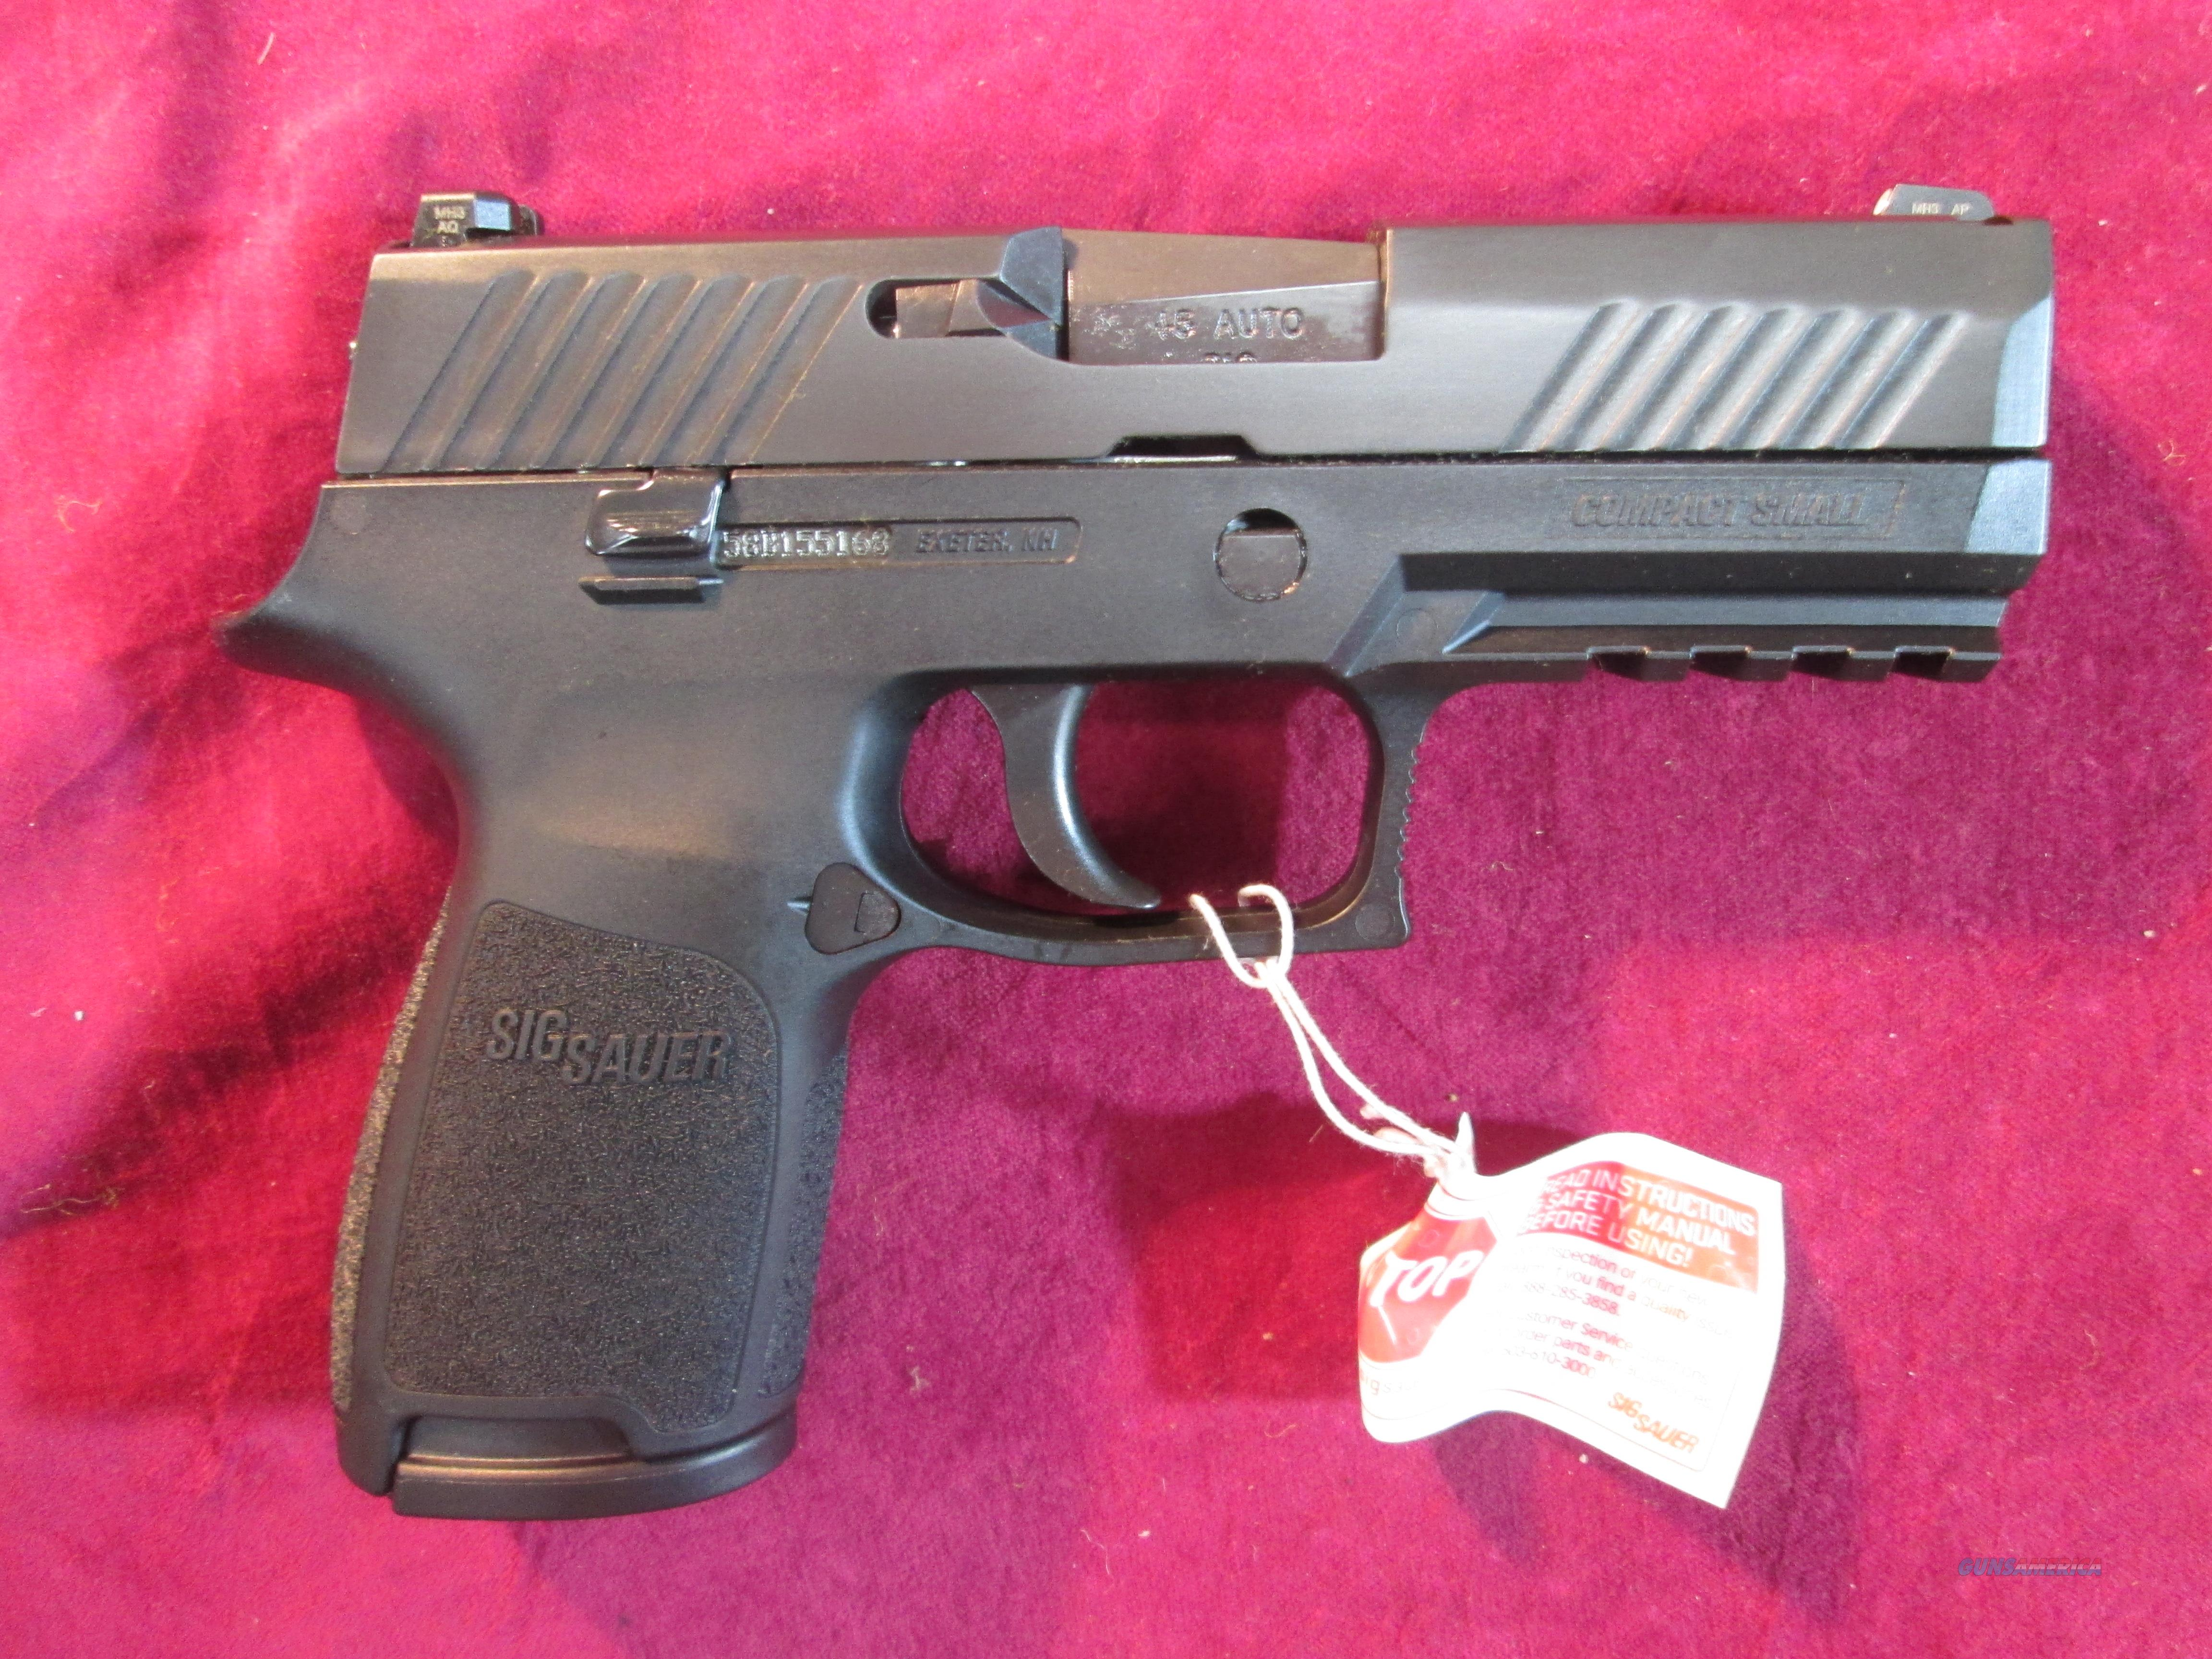 SIG SAUER P320 COMPACT 45ACP W/ NIGHT SIGHTS NEW (320C-45-BSS)  Guns > Pistols > Sig - Sauer/Sigarms Pistols > P320